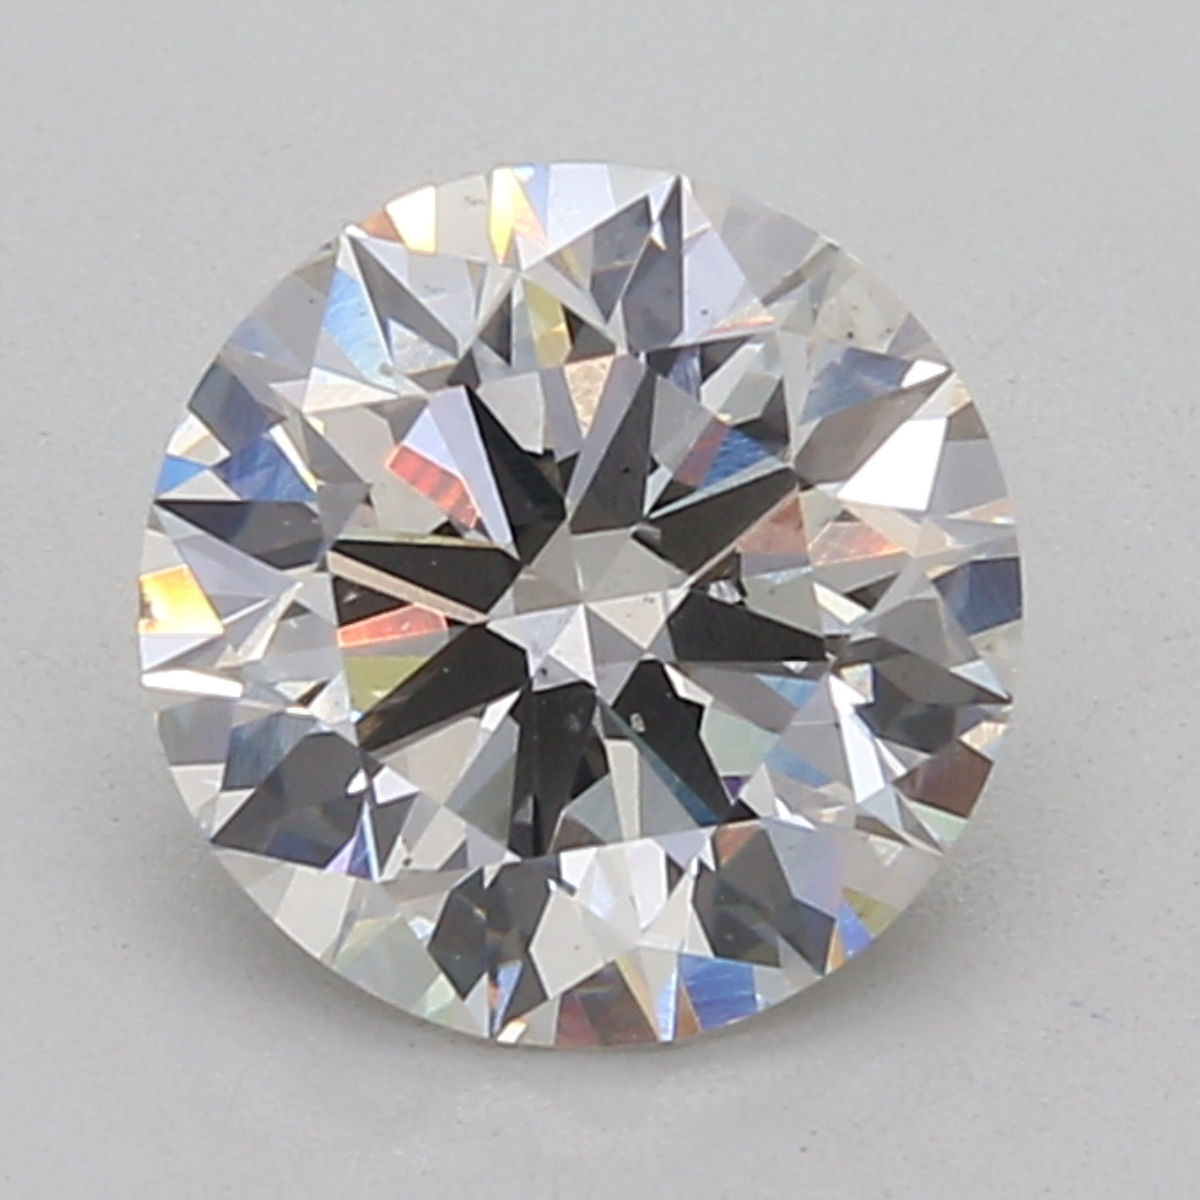 Round Cut 2.52 Carat H Color Si1 Clarity Sku Lg6834314